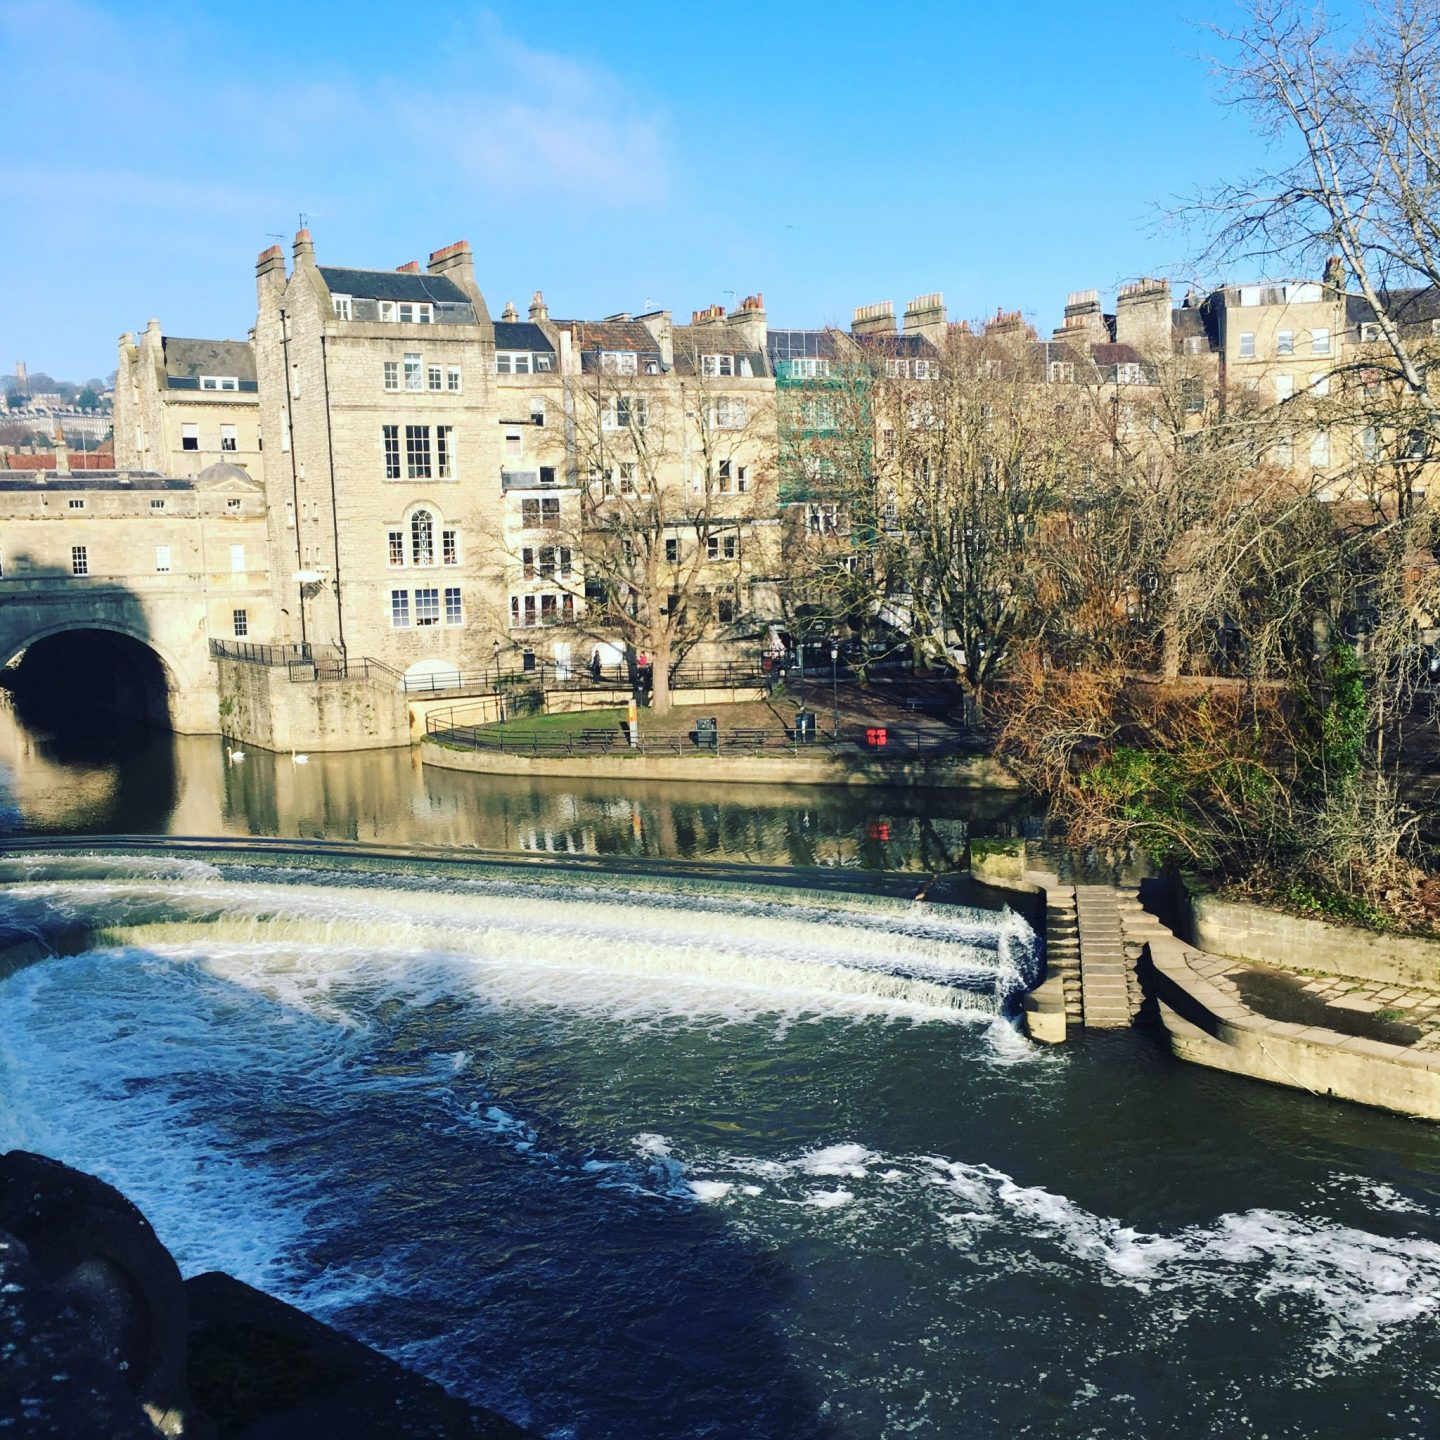 The Sights of Bath